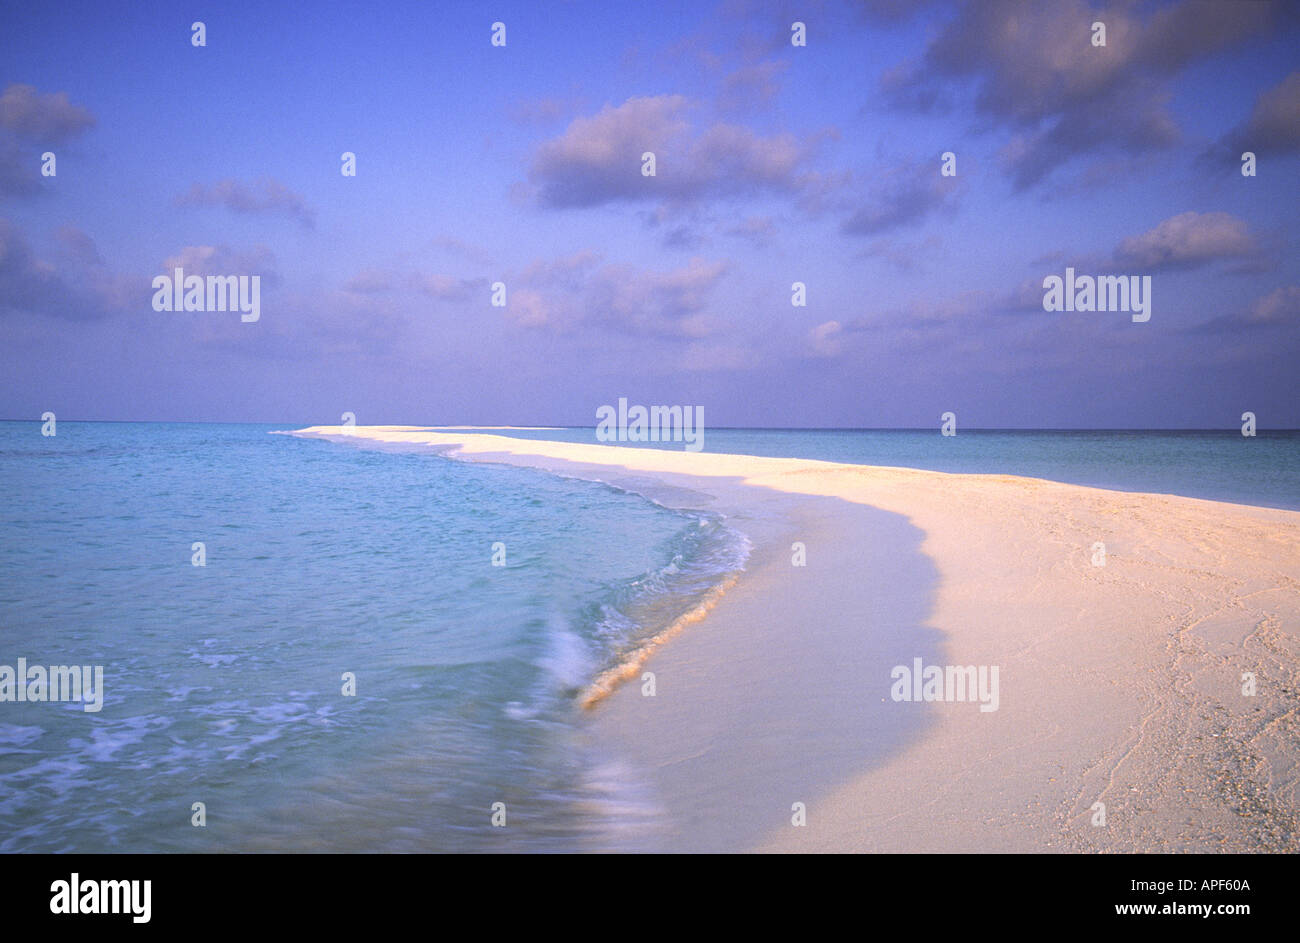 Tropical beach in  the Maldives with wave breaking on the soft white sand - Stock Image